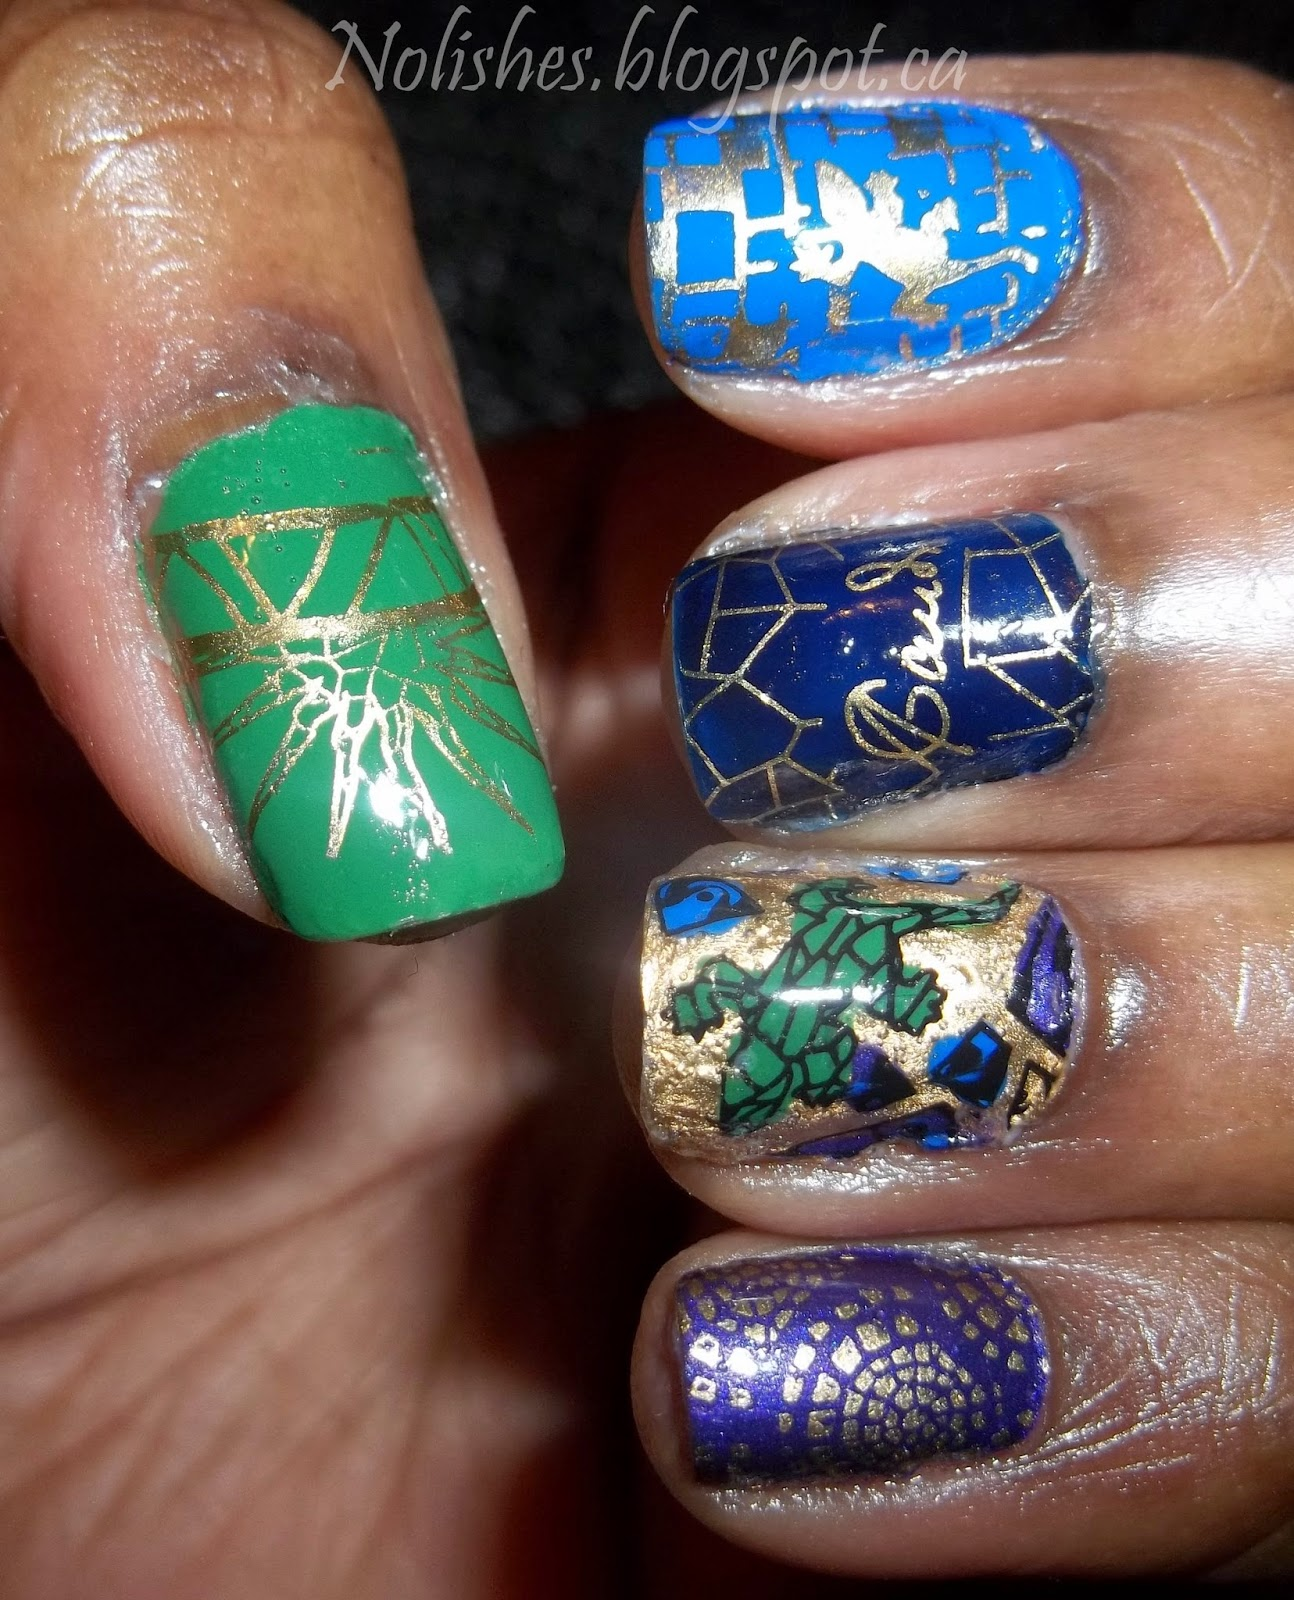 Nail Stamping manicure created using Moyou London Artist 13, in green, blue, navy, purple and gold.